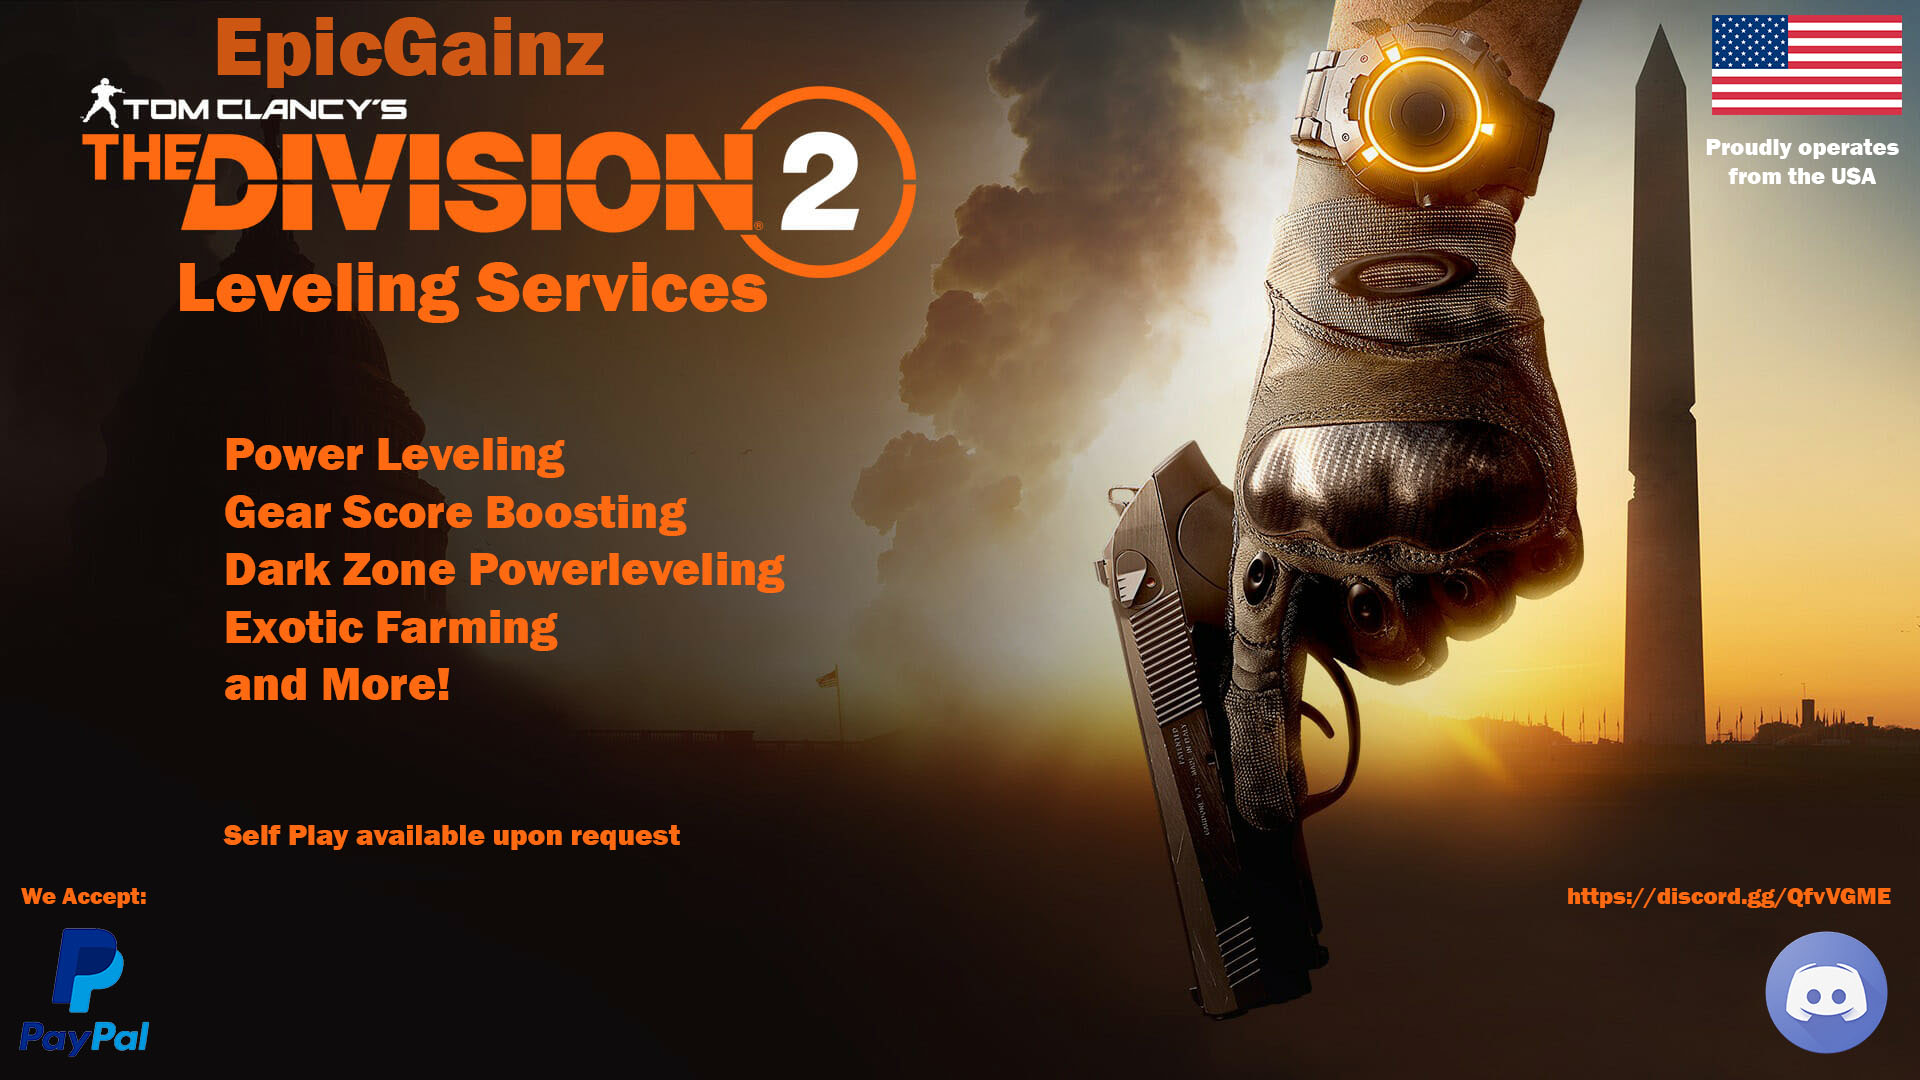 Selling] [PC] EpicGainz The Division 2 Services! Cheap and quick!